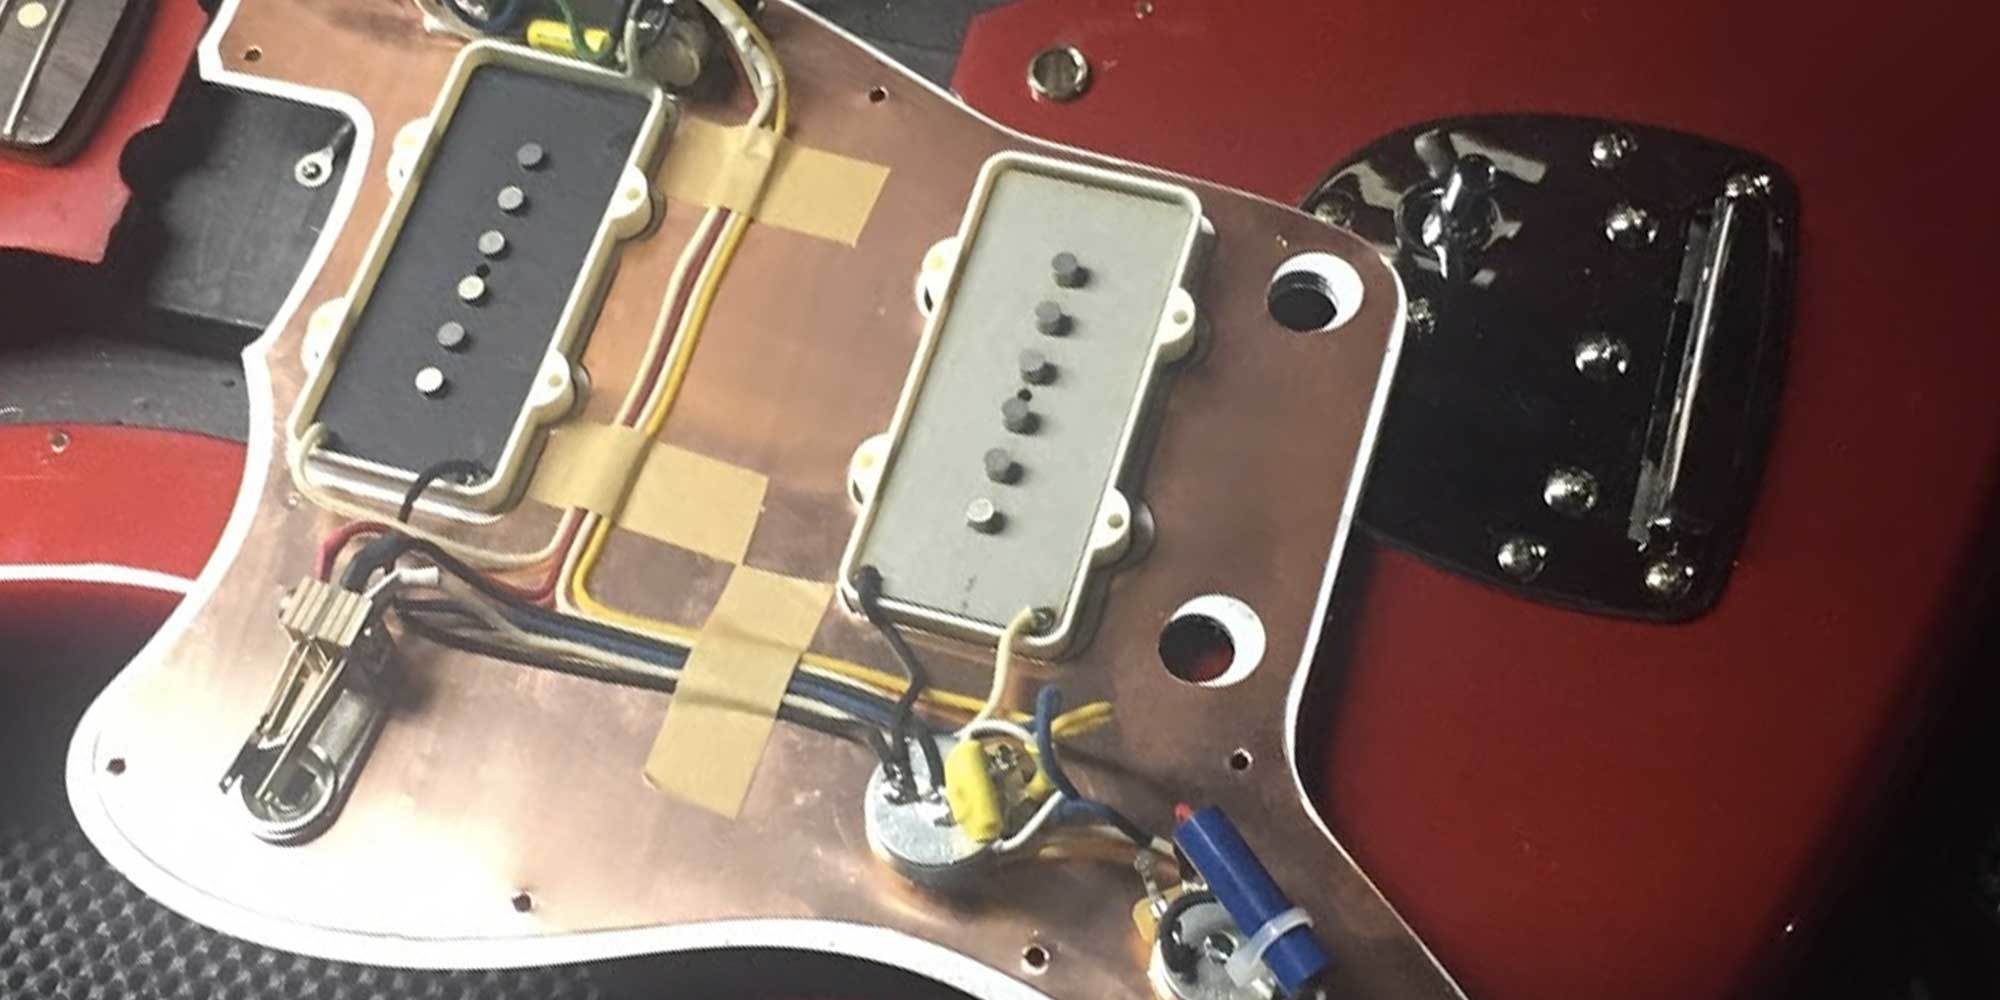 Peachy Upgrading Jazzmaster Electronics Unleash The Potential Reverb News Wiring Cloud Waroletkolfr09Org